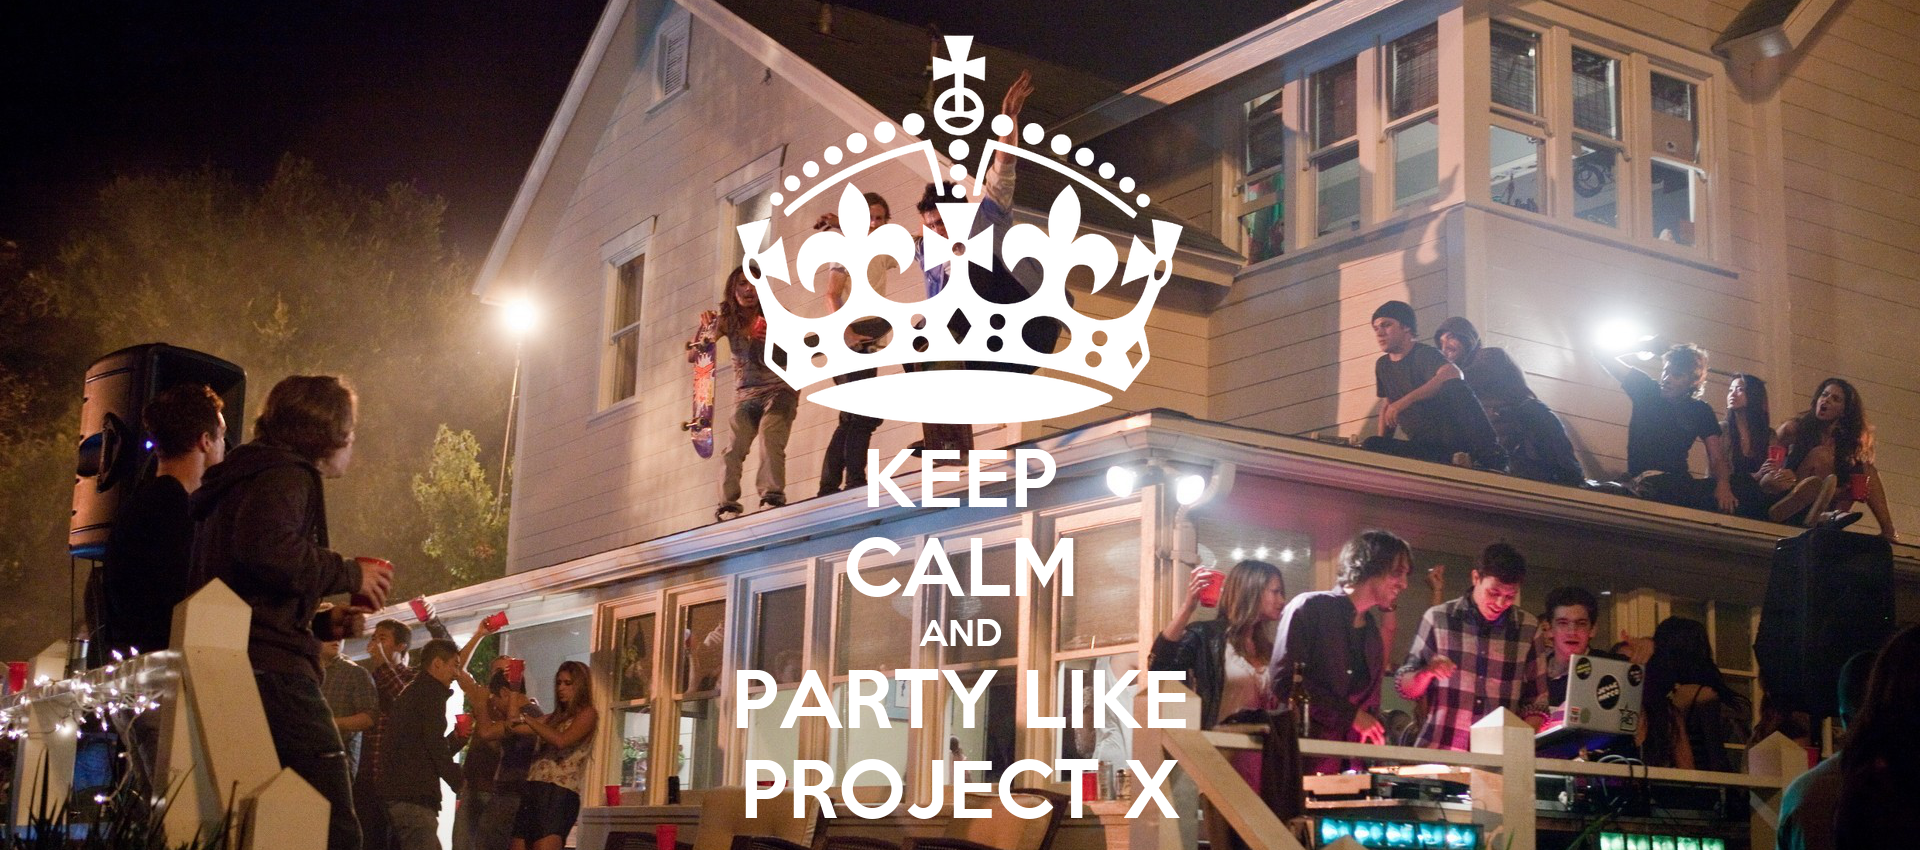 KEEP CALM AND PARTY LIKE PROJECT X Poster | dariuszwielgus ...